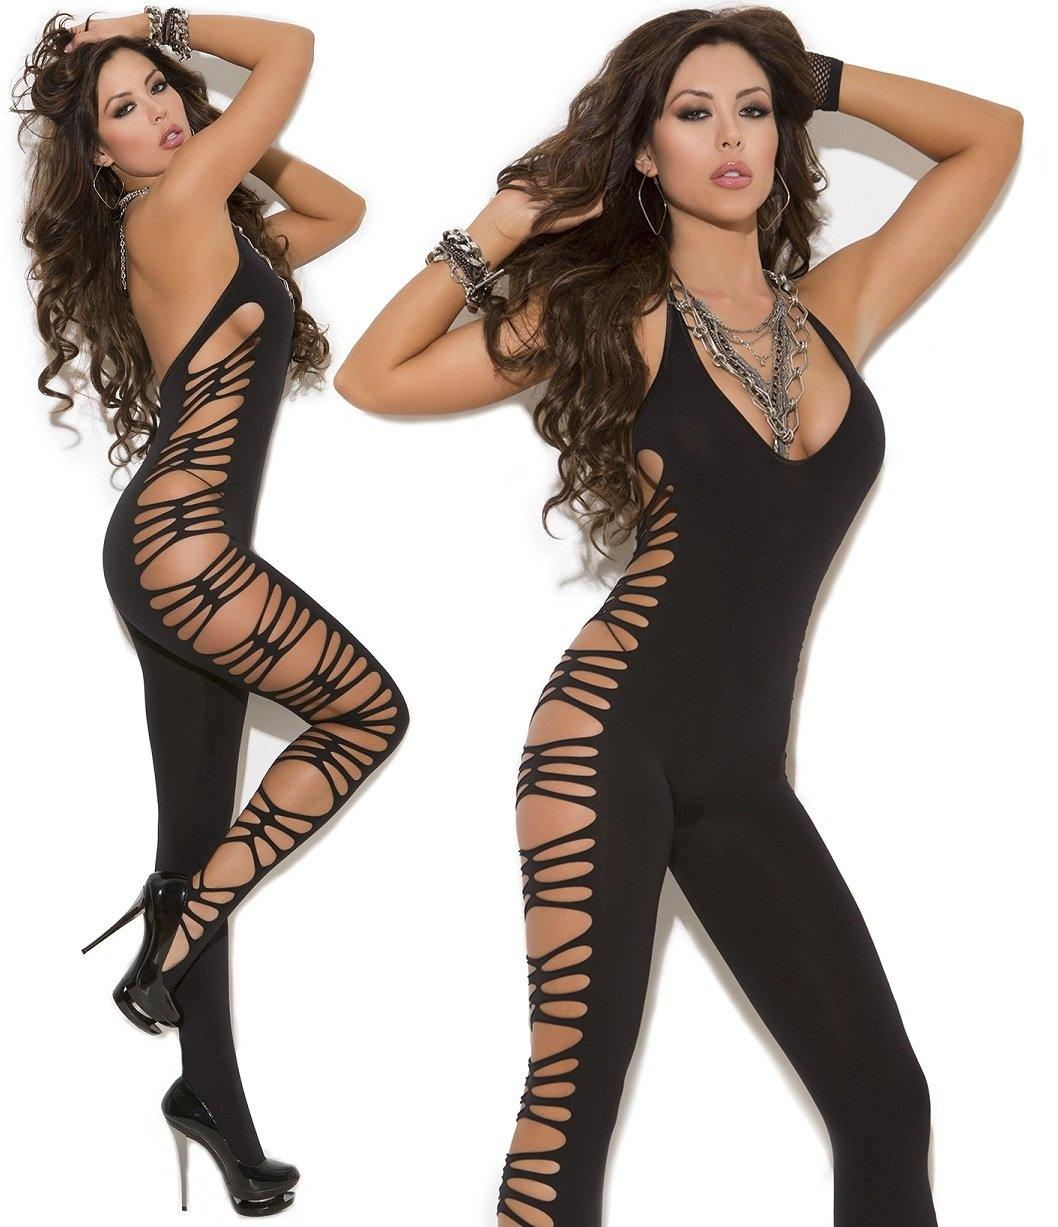 Black Deep V Side Cut Out Crotchless Bodystocking - Amore Lingerie